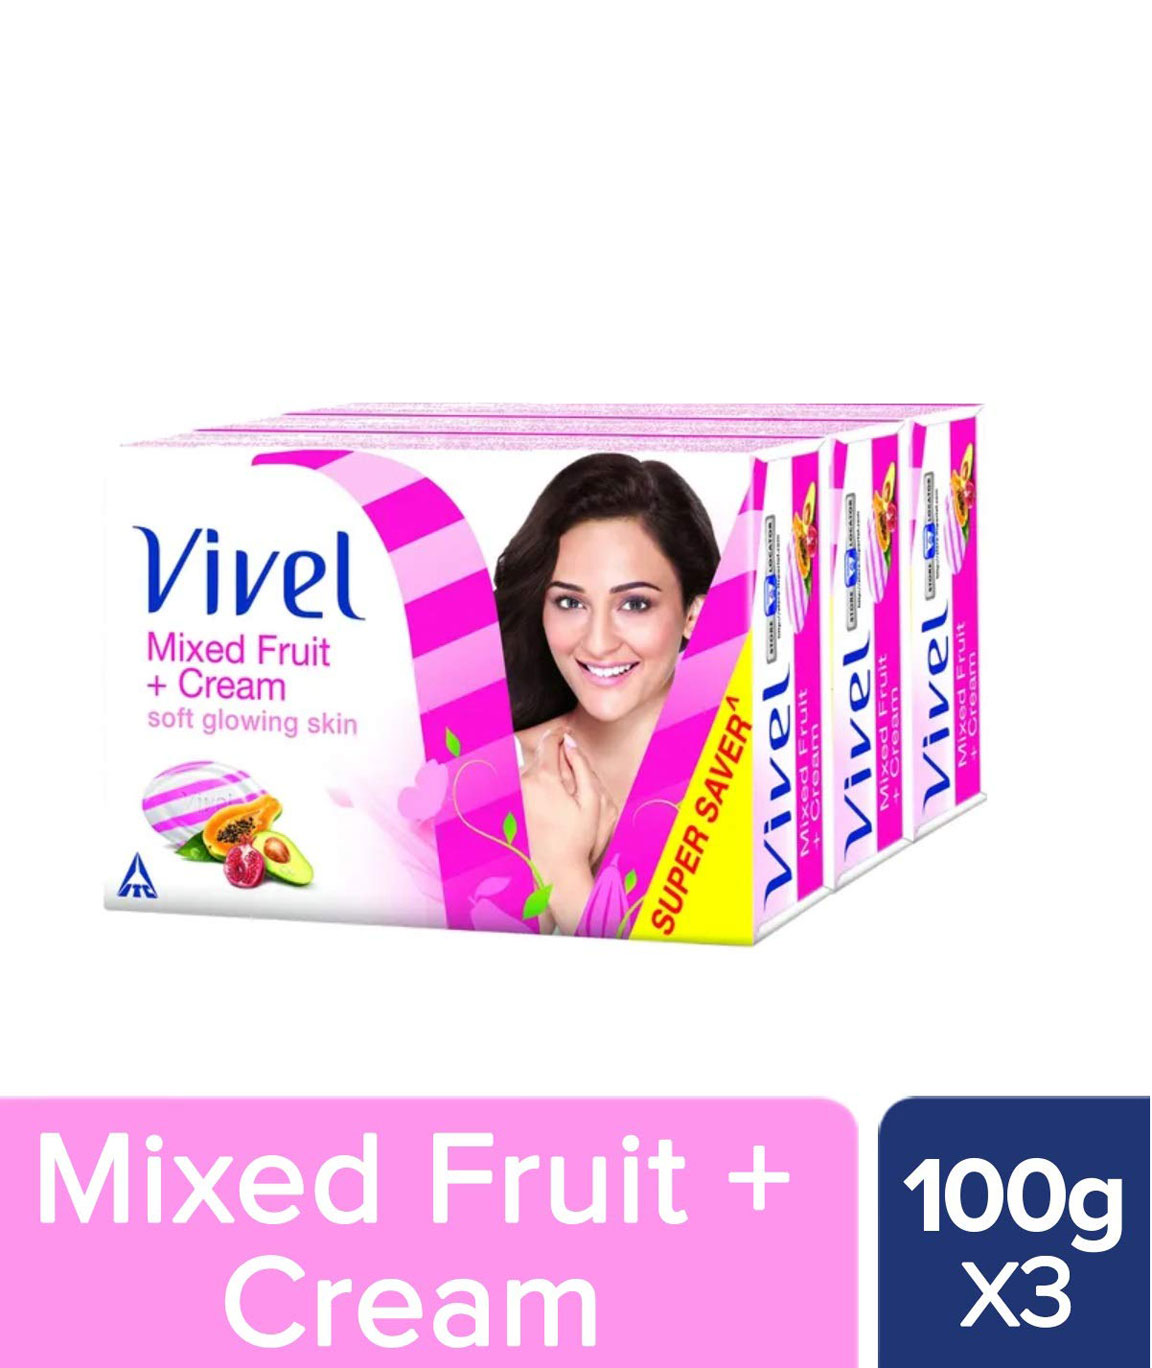 Vivel Mixed Fruit and Cream Soap 100g (Pack of 3)